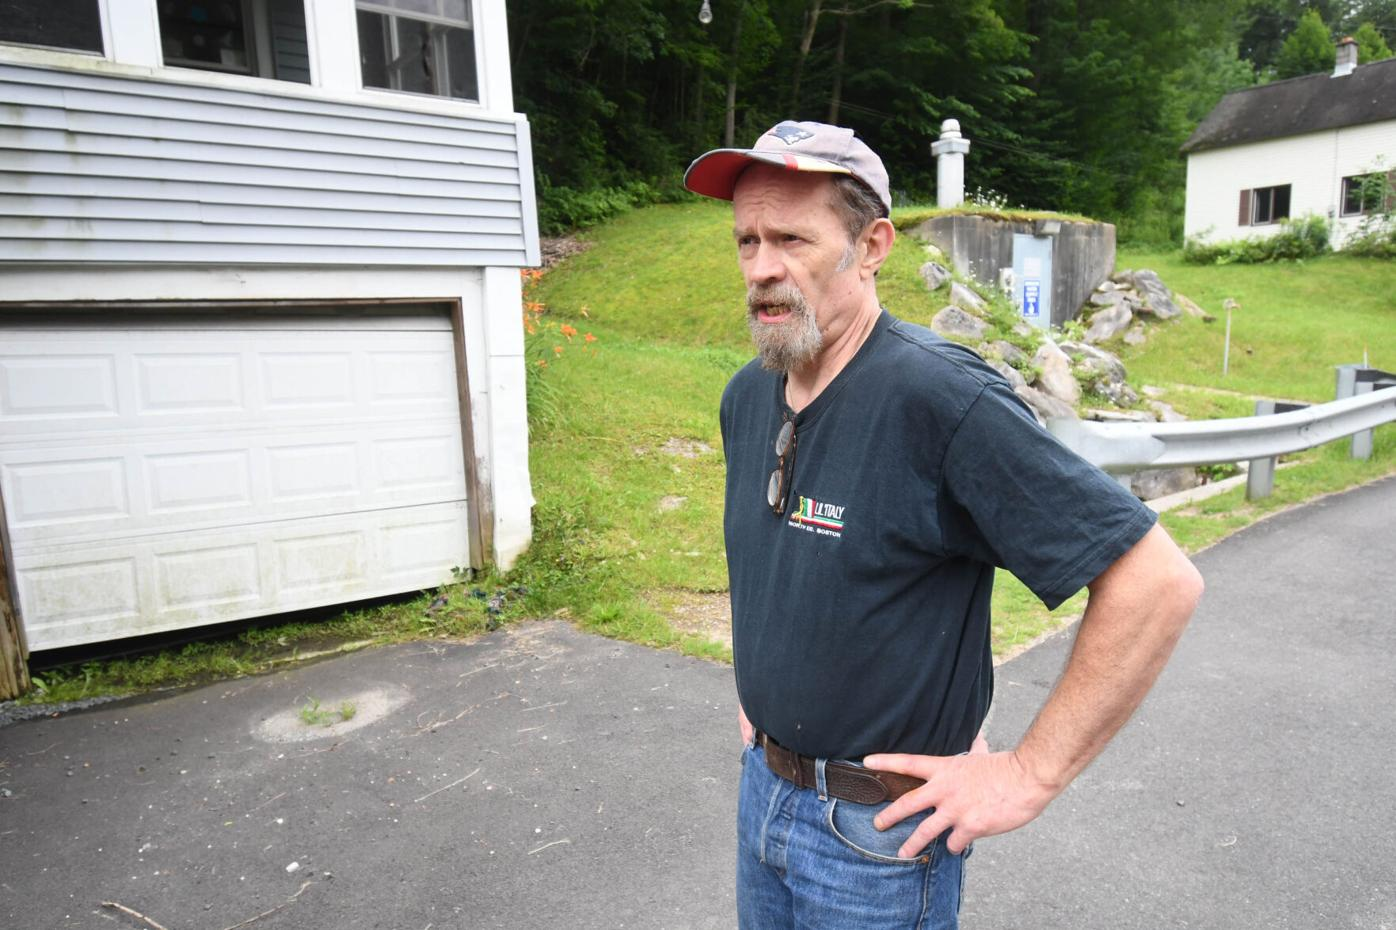 Carl McKinney stands in front of a garage